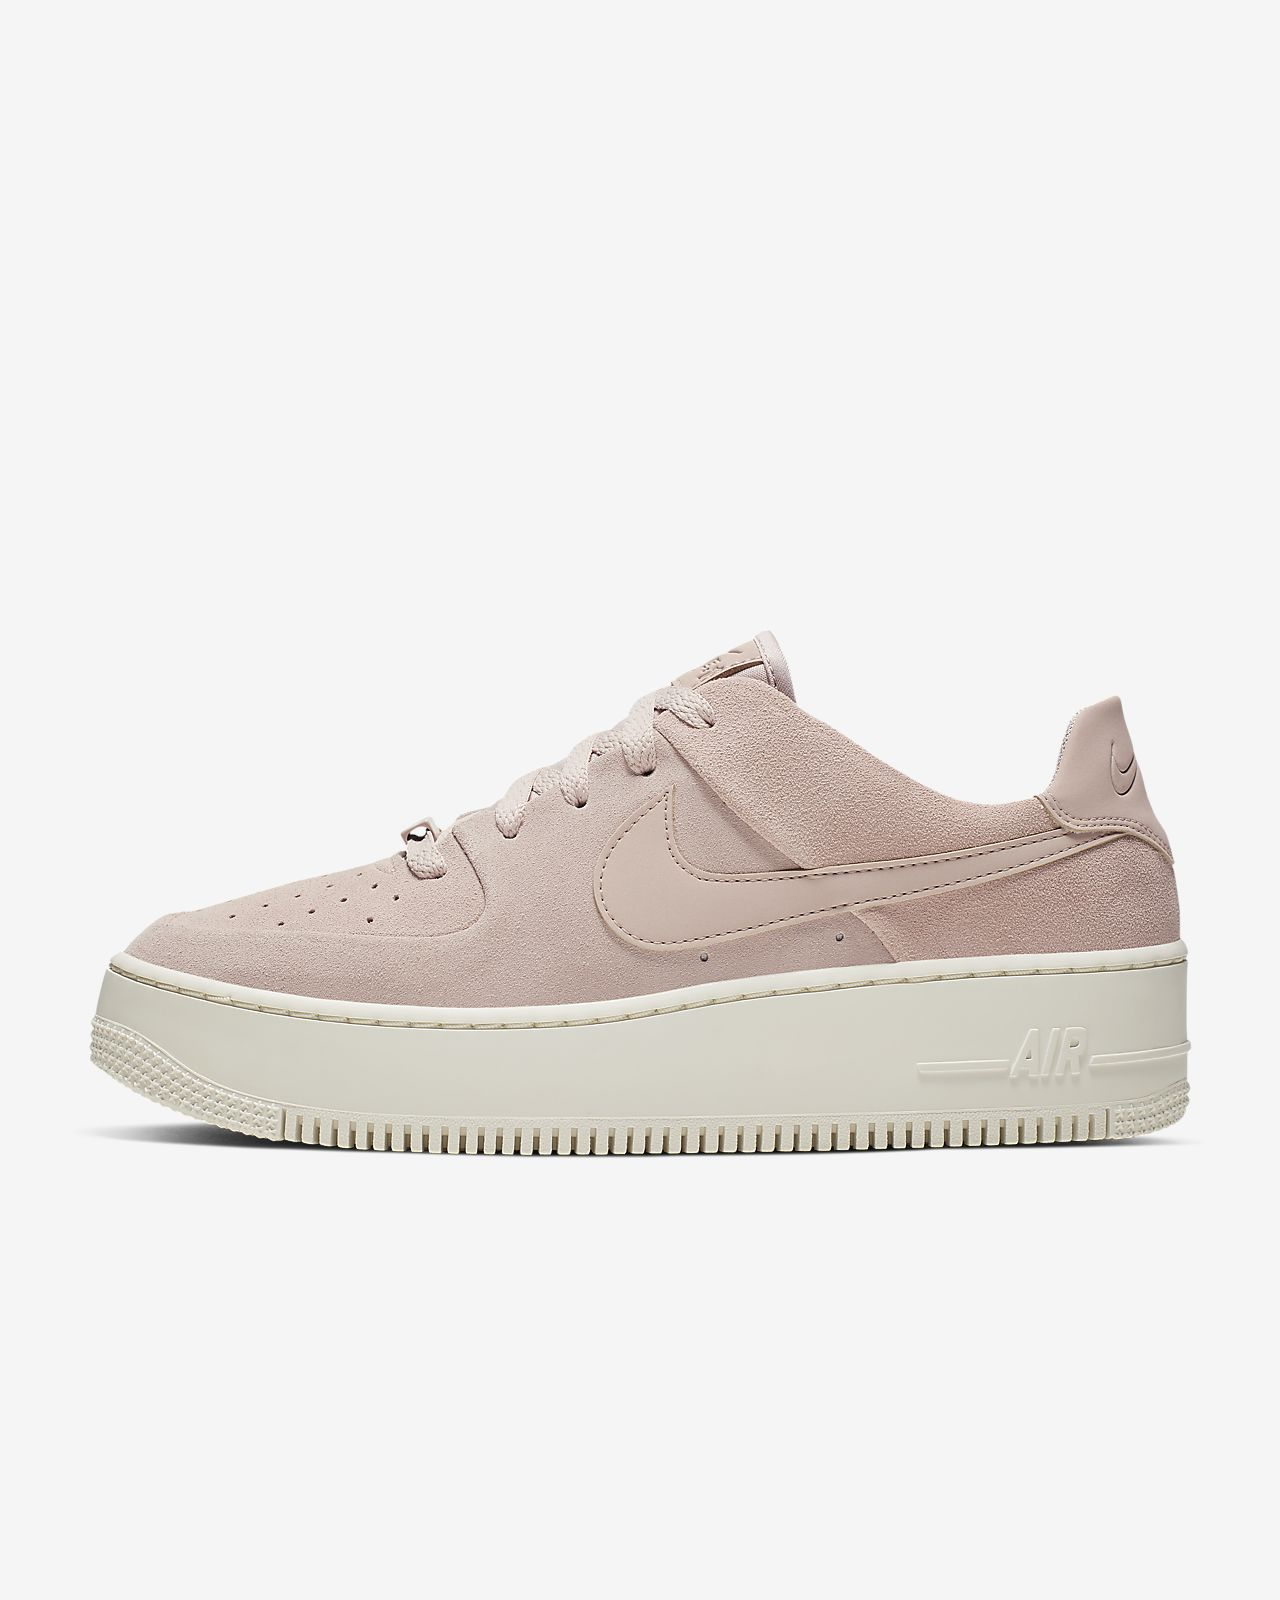 official photos db83f 91818 ... Chaussure Nike Air Force 1 Sage Low pour Femme